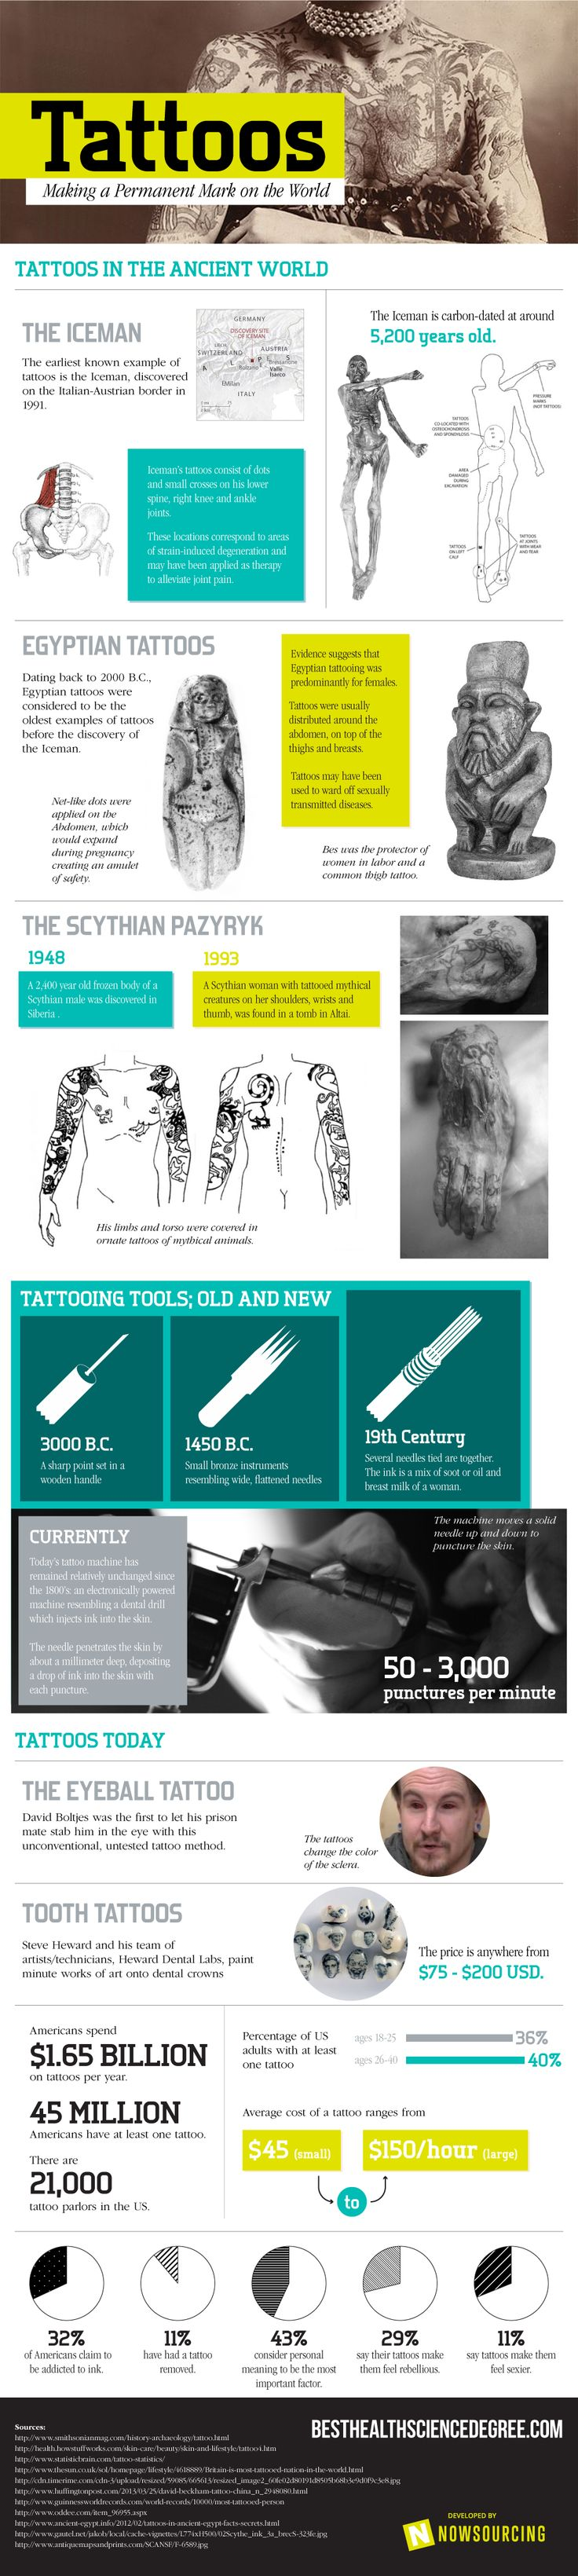 The History of Tattoos [Infographic] - http://infotainmentnews.net/2013/05/29/history-tattoos-infographic/